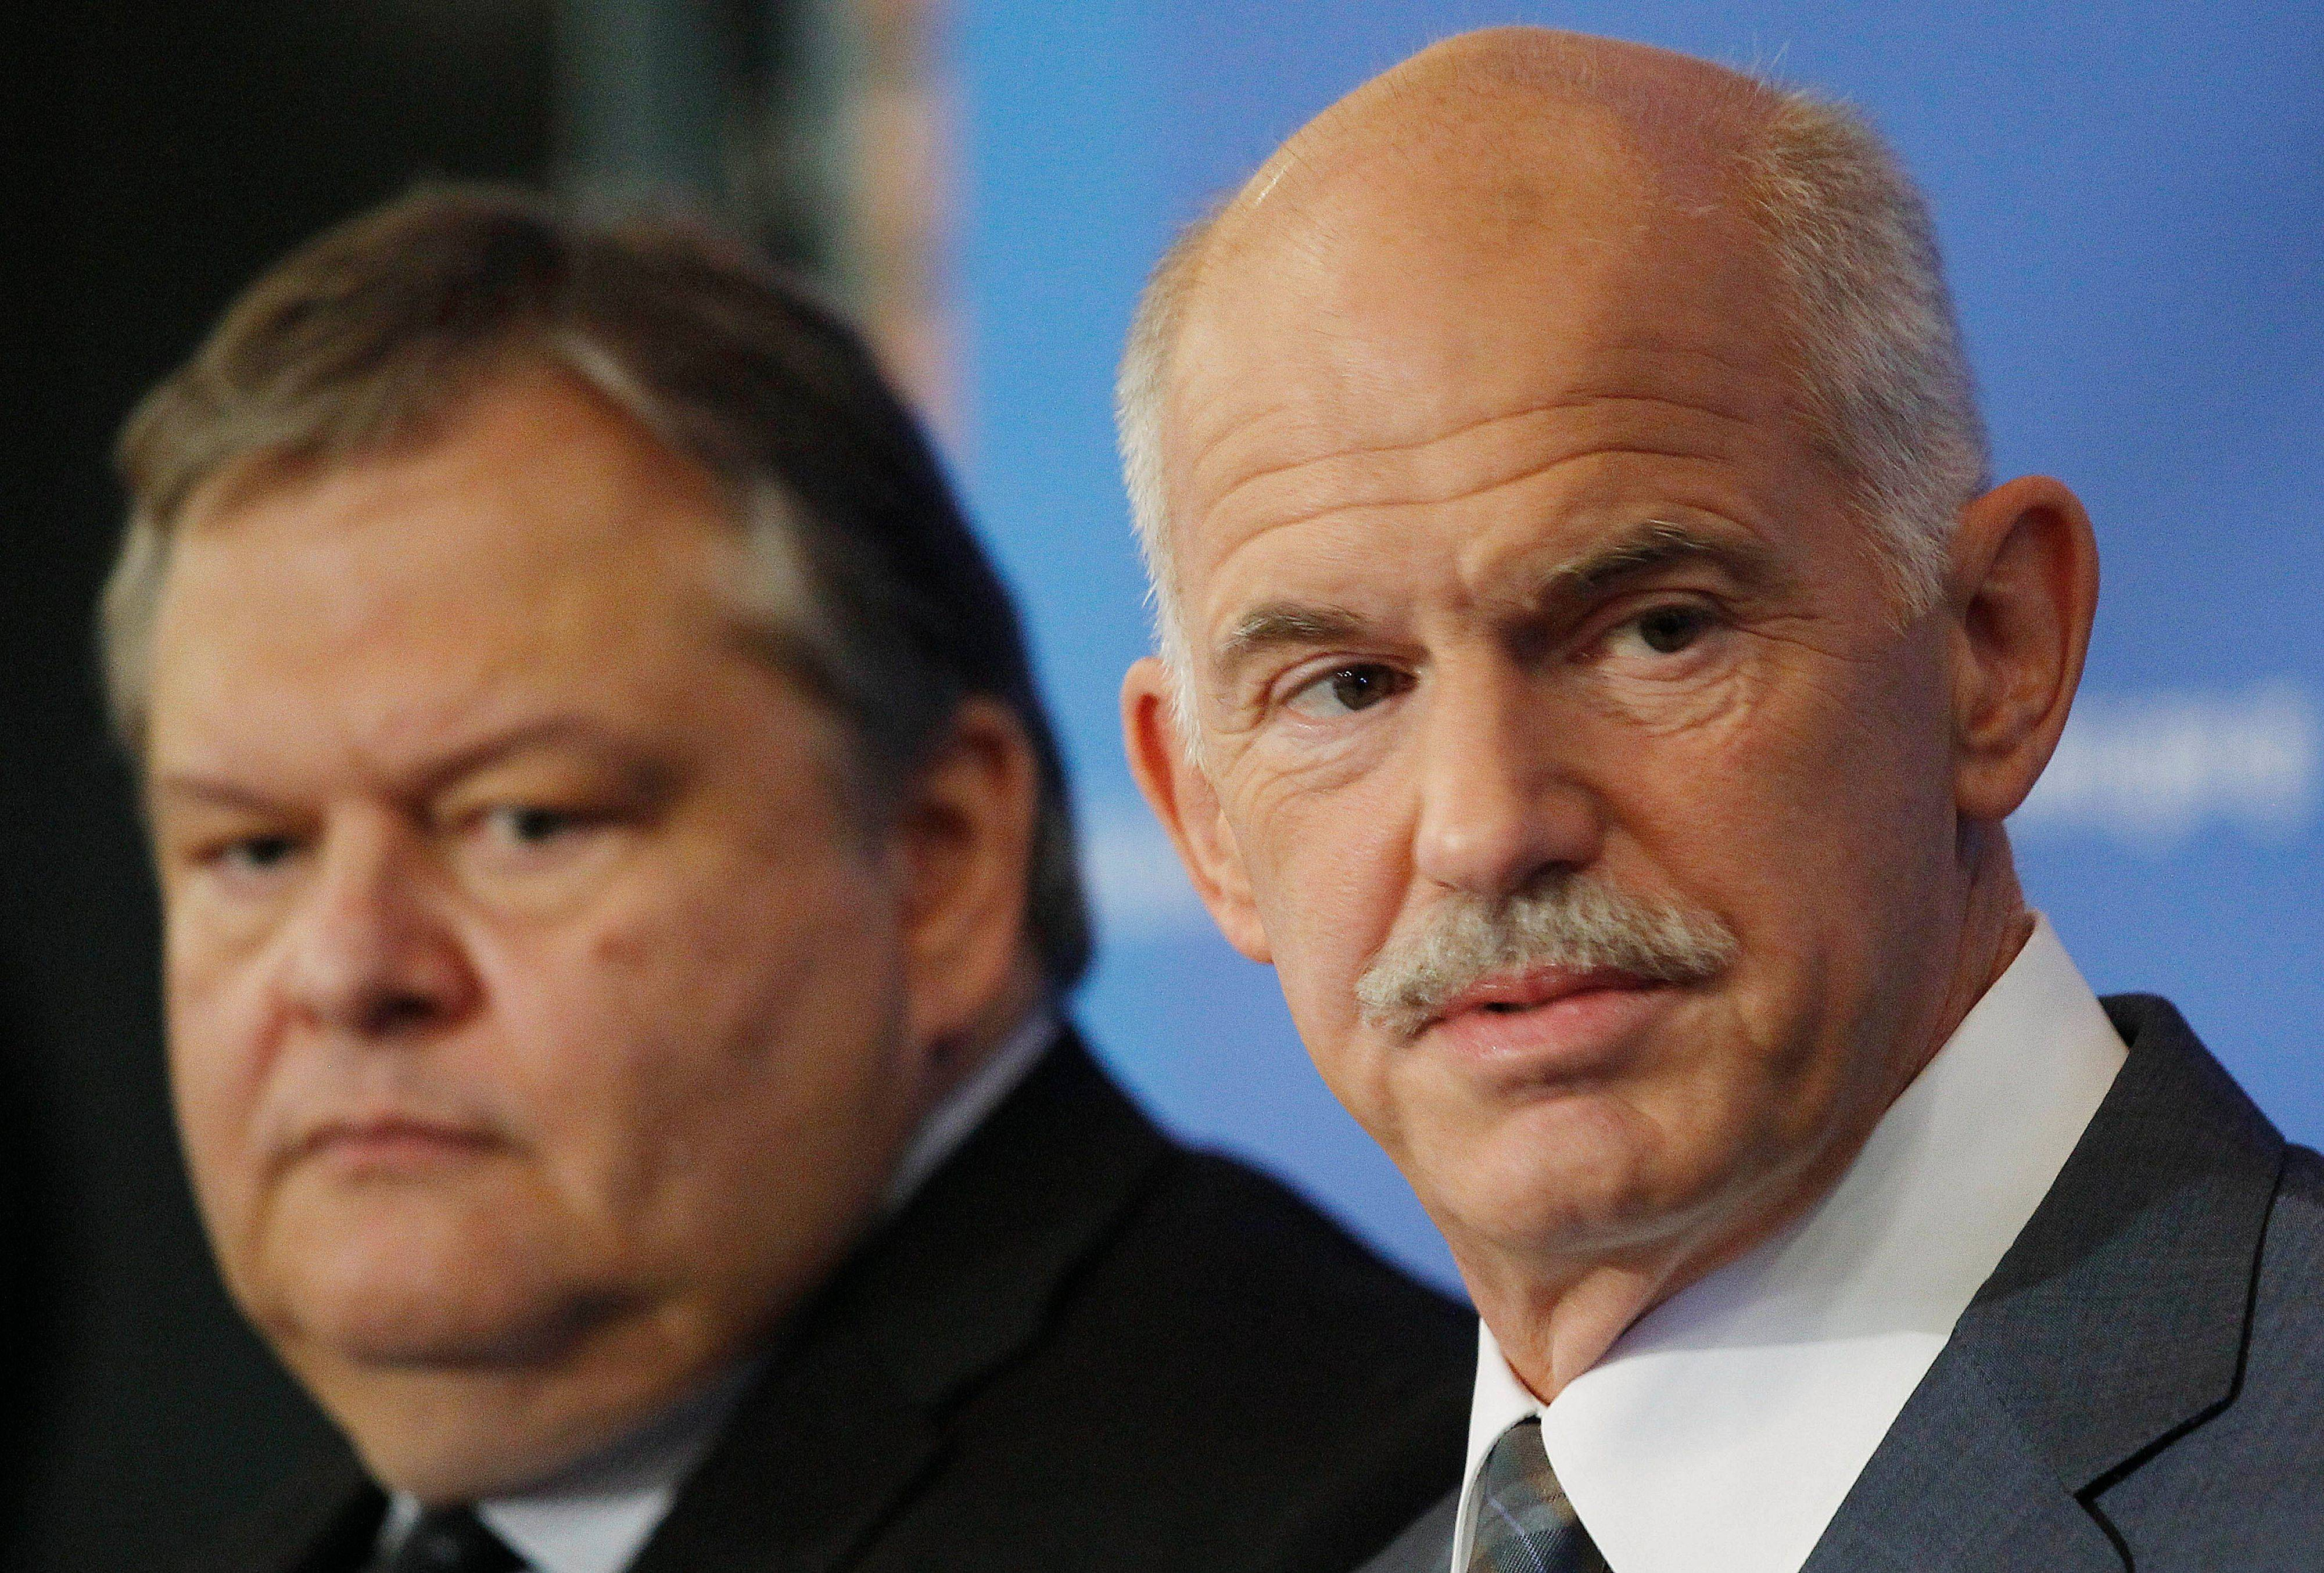 Greek Prime Minister George Papandreou, right, backed by his Finance Minister Evangelos Venizelos talks to the media during a press conference in Thessaloniki, Greece, Sunday.